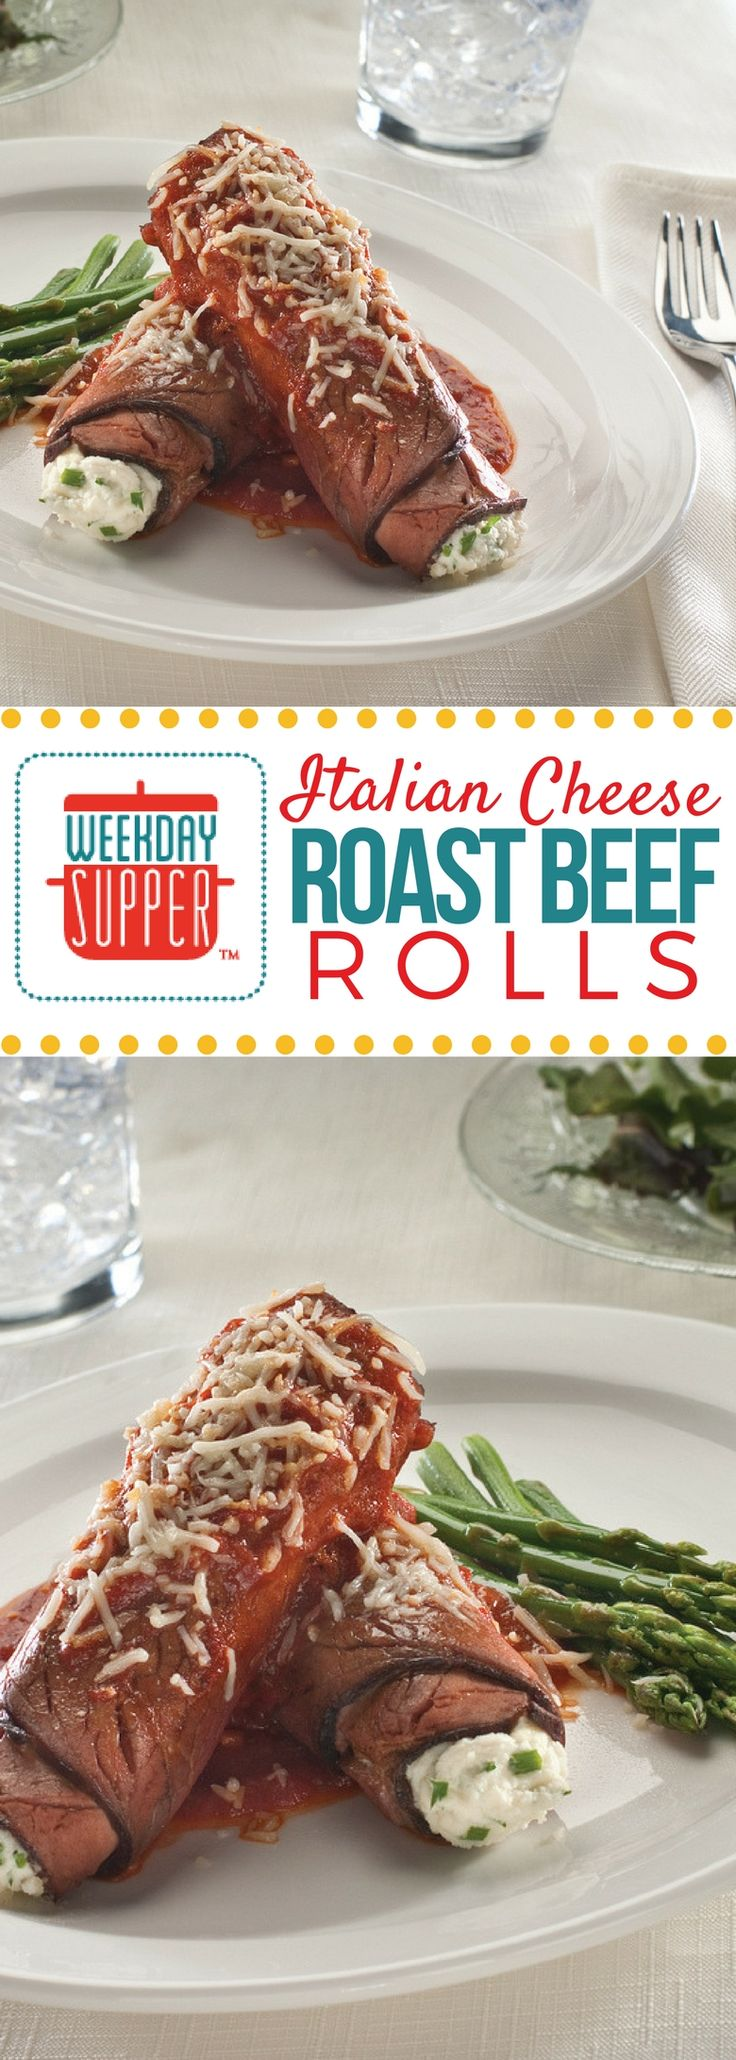 Creamy mozzarella and ricotta mixed with salty Parmesan make a delightful filling for these Cheese Roast Beef Rolls. Pizza sauce adds a sharp, sweet note to this Sunday Supper recipe.